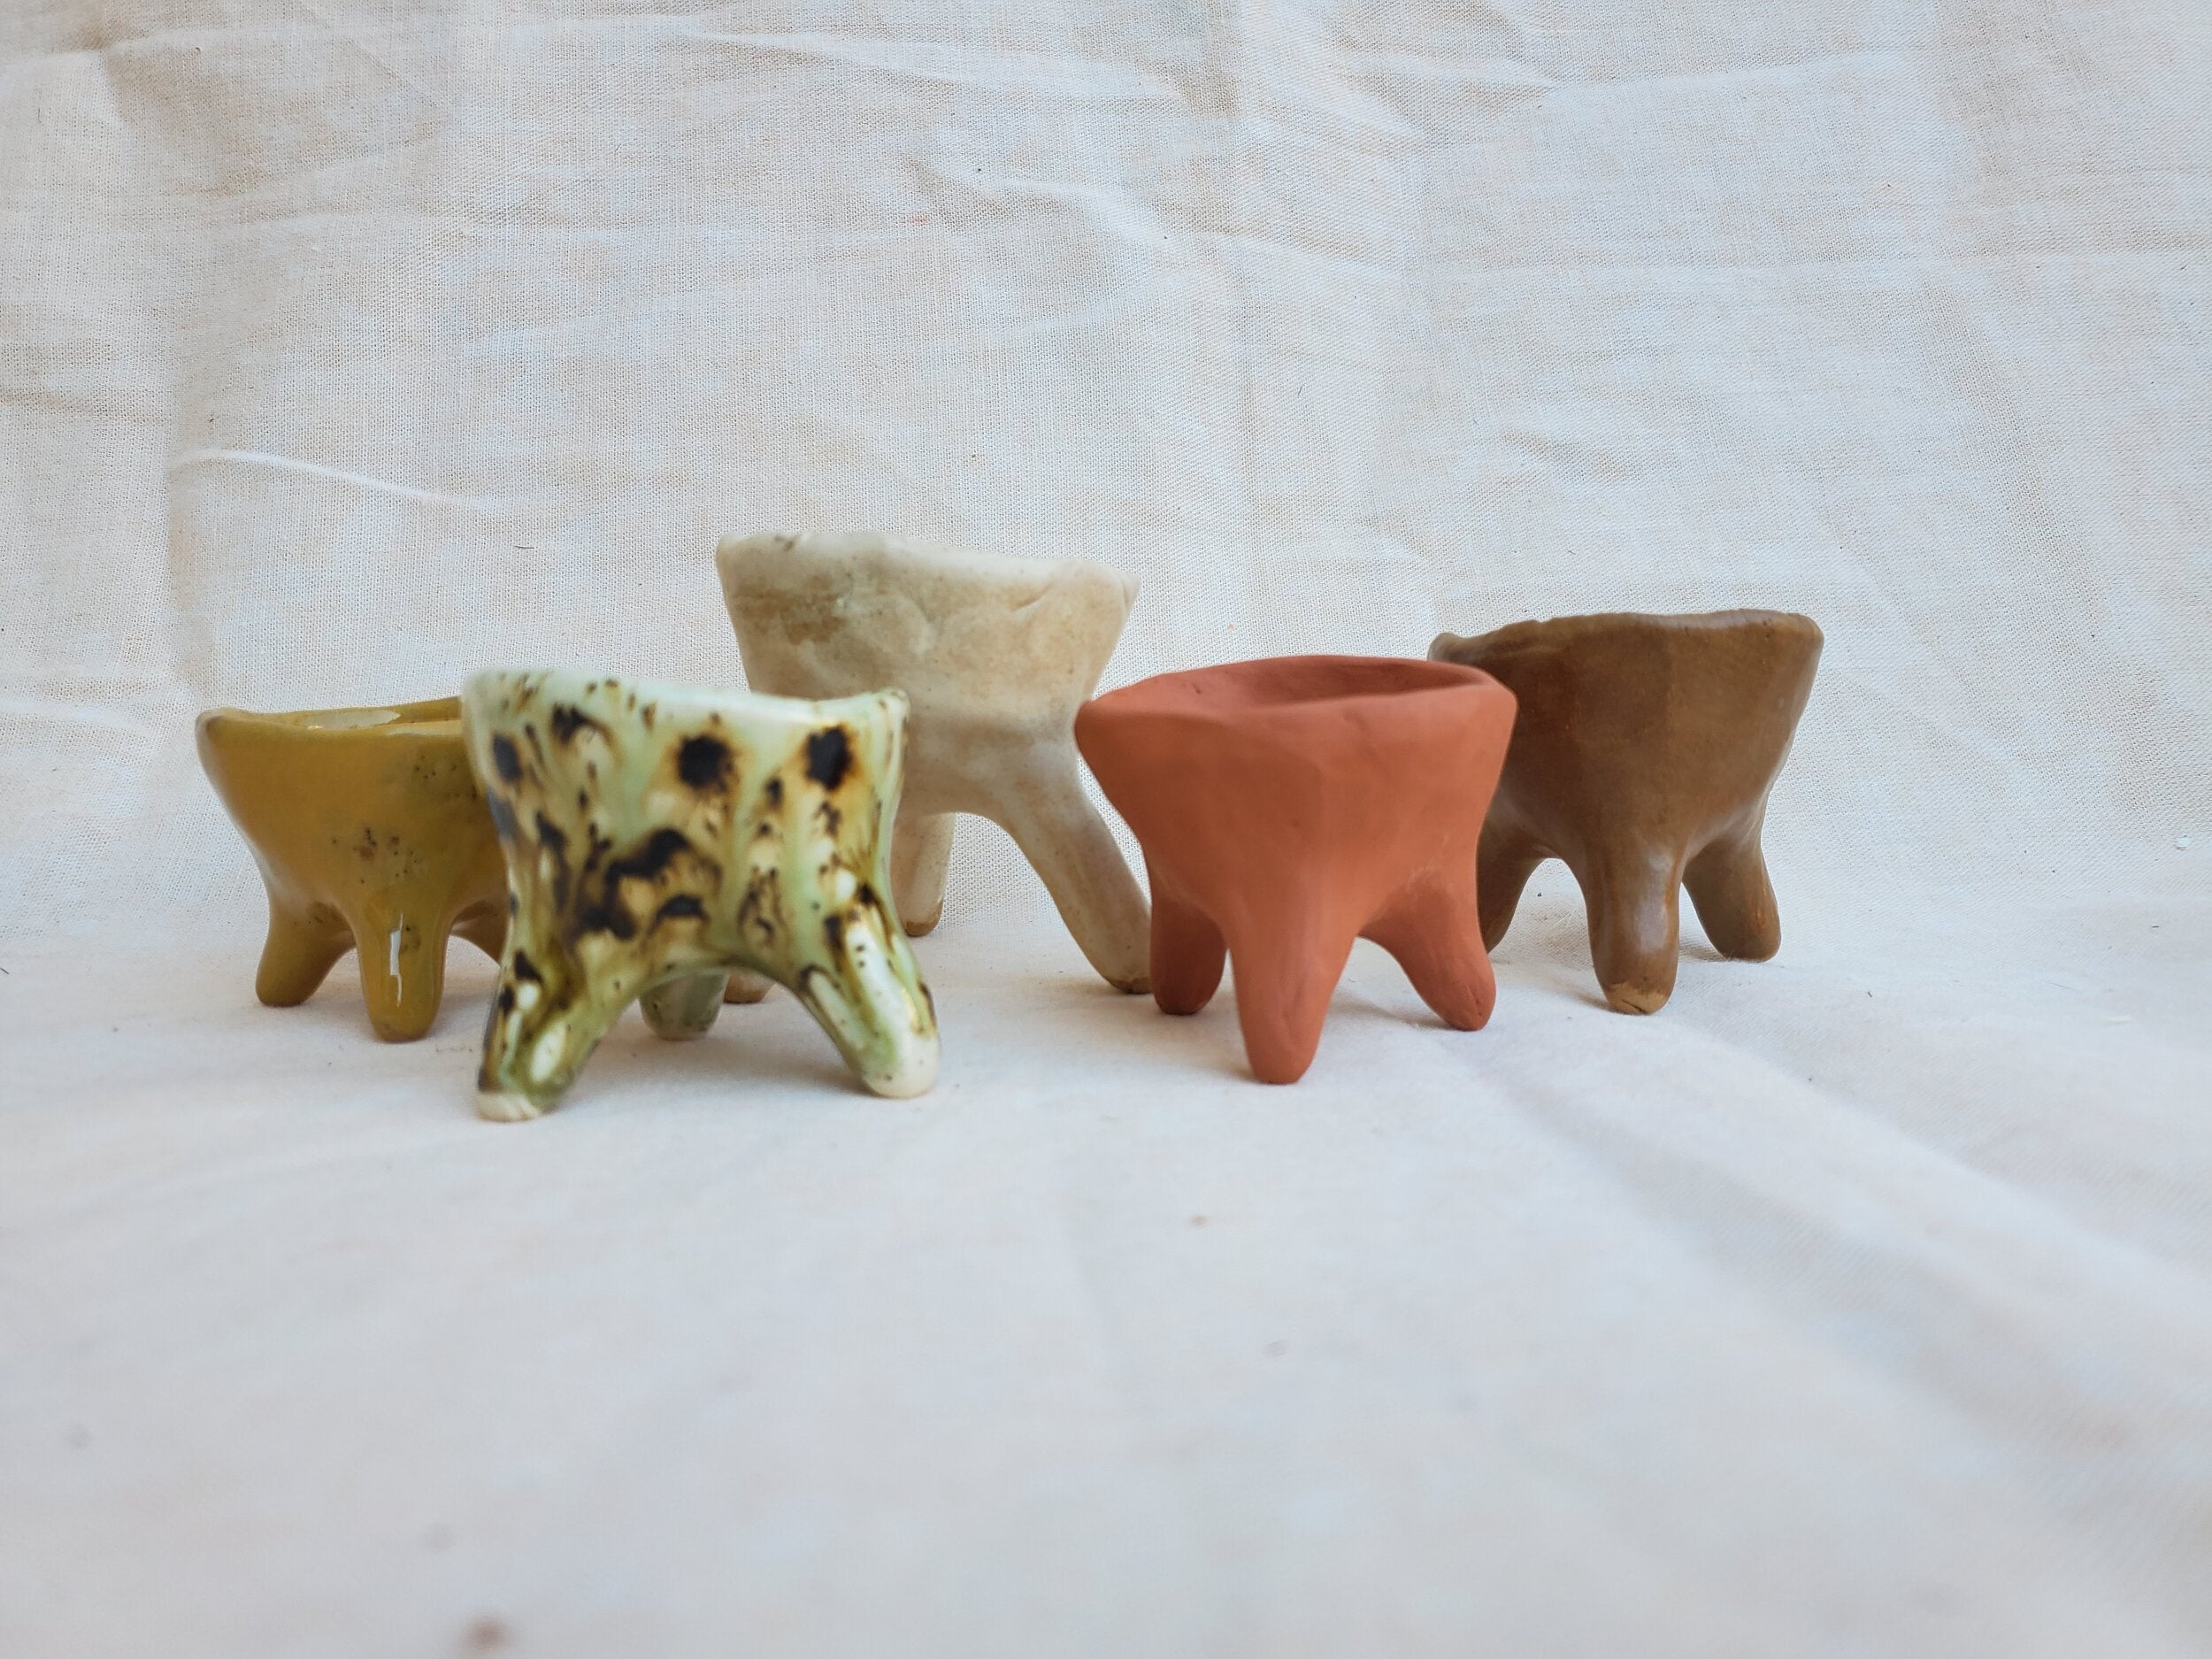 "Handmade clay pinch pots and art objects with lots of character and soul. Each one is totally unique, but measure approximately the same size (about 2"" by 2""). Perfect to use as jewelry or ring dishes, salt pinch, air plant holder, or incense holder."